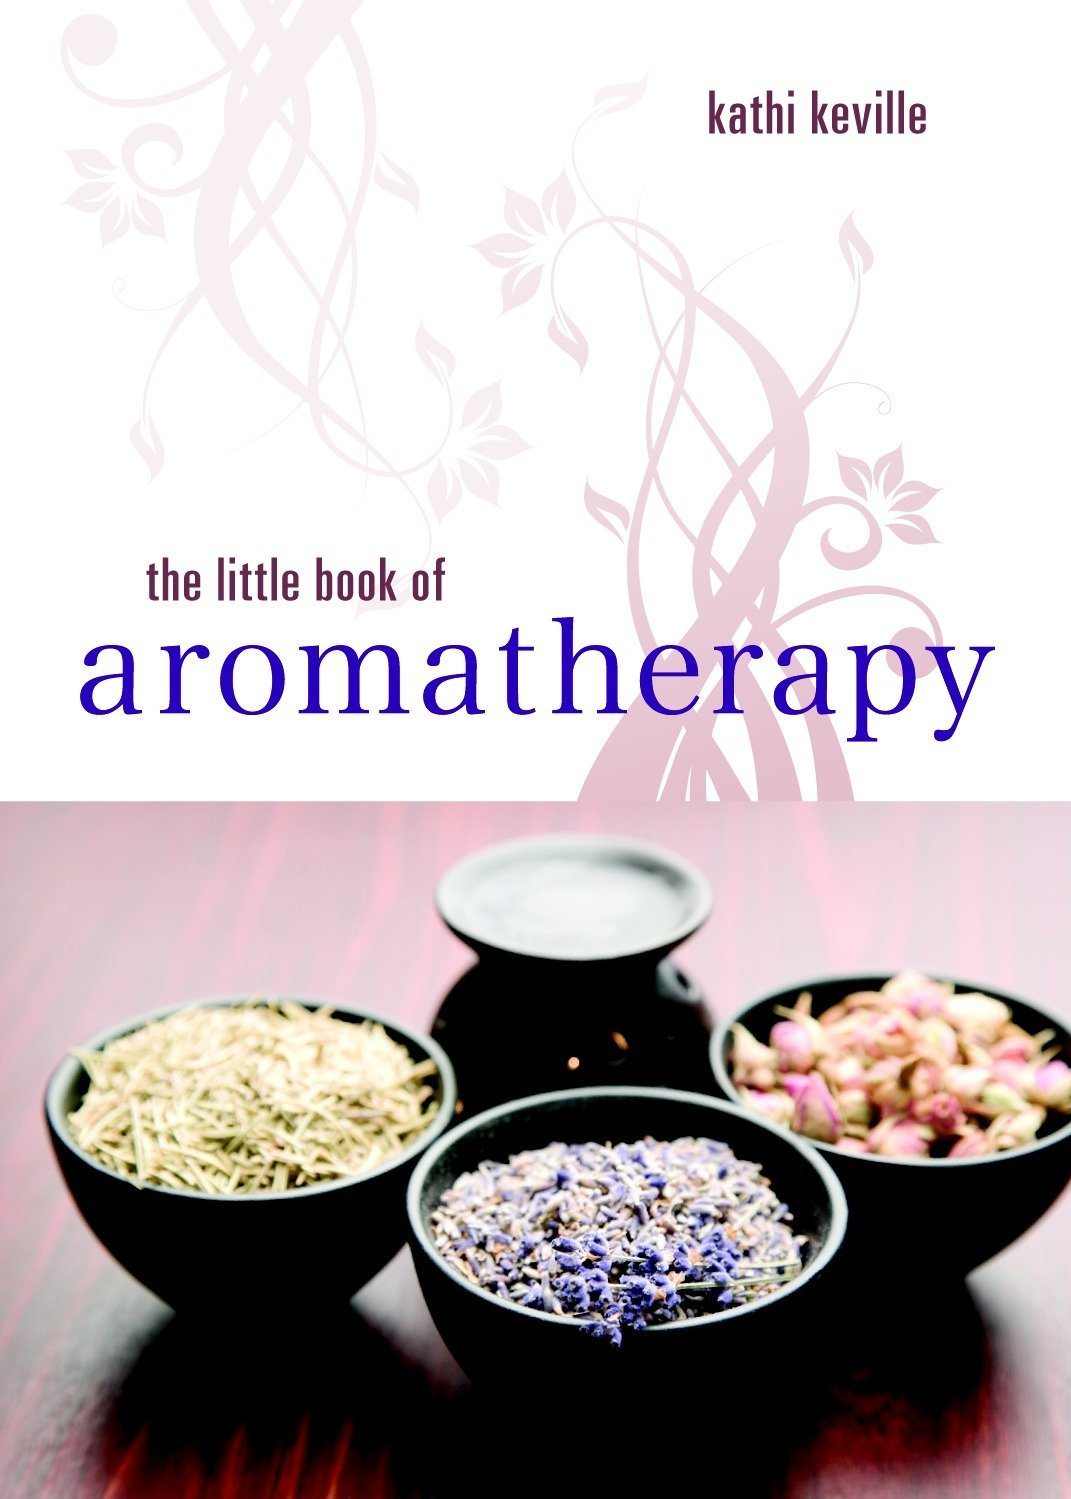 The Little Book of Aromatherapy pdf